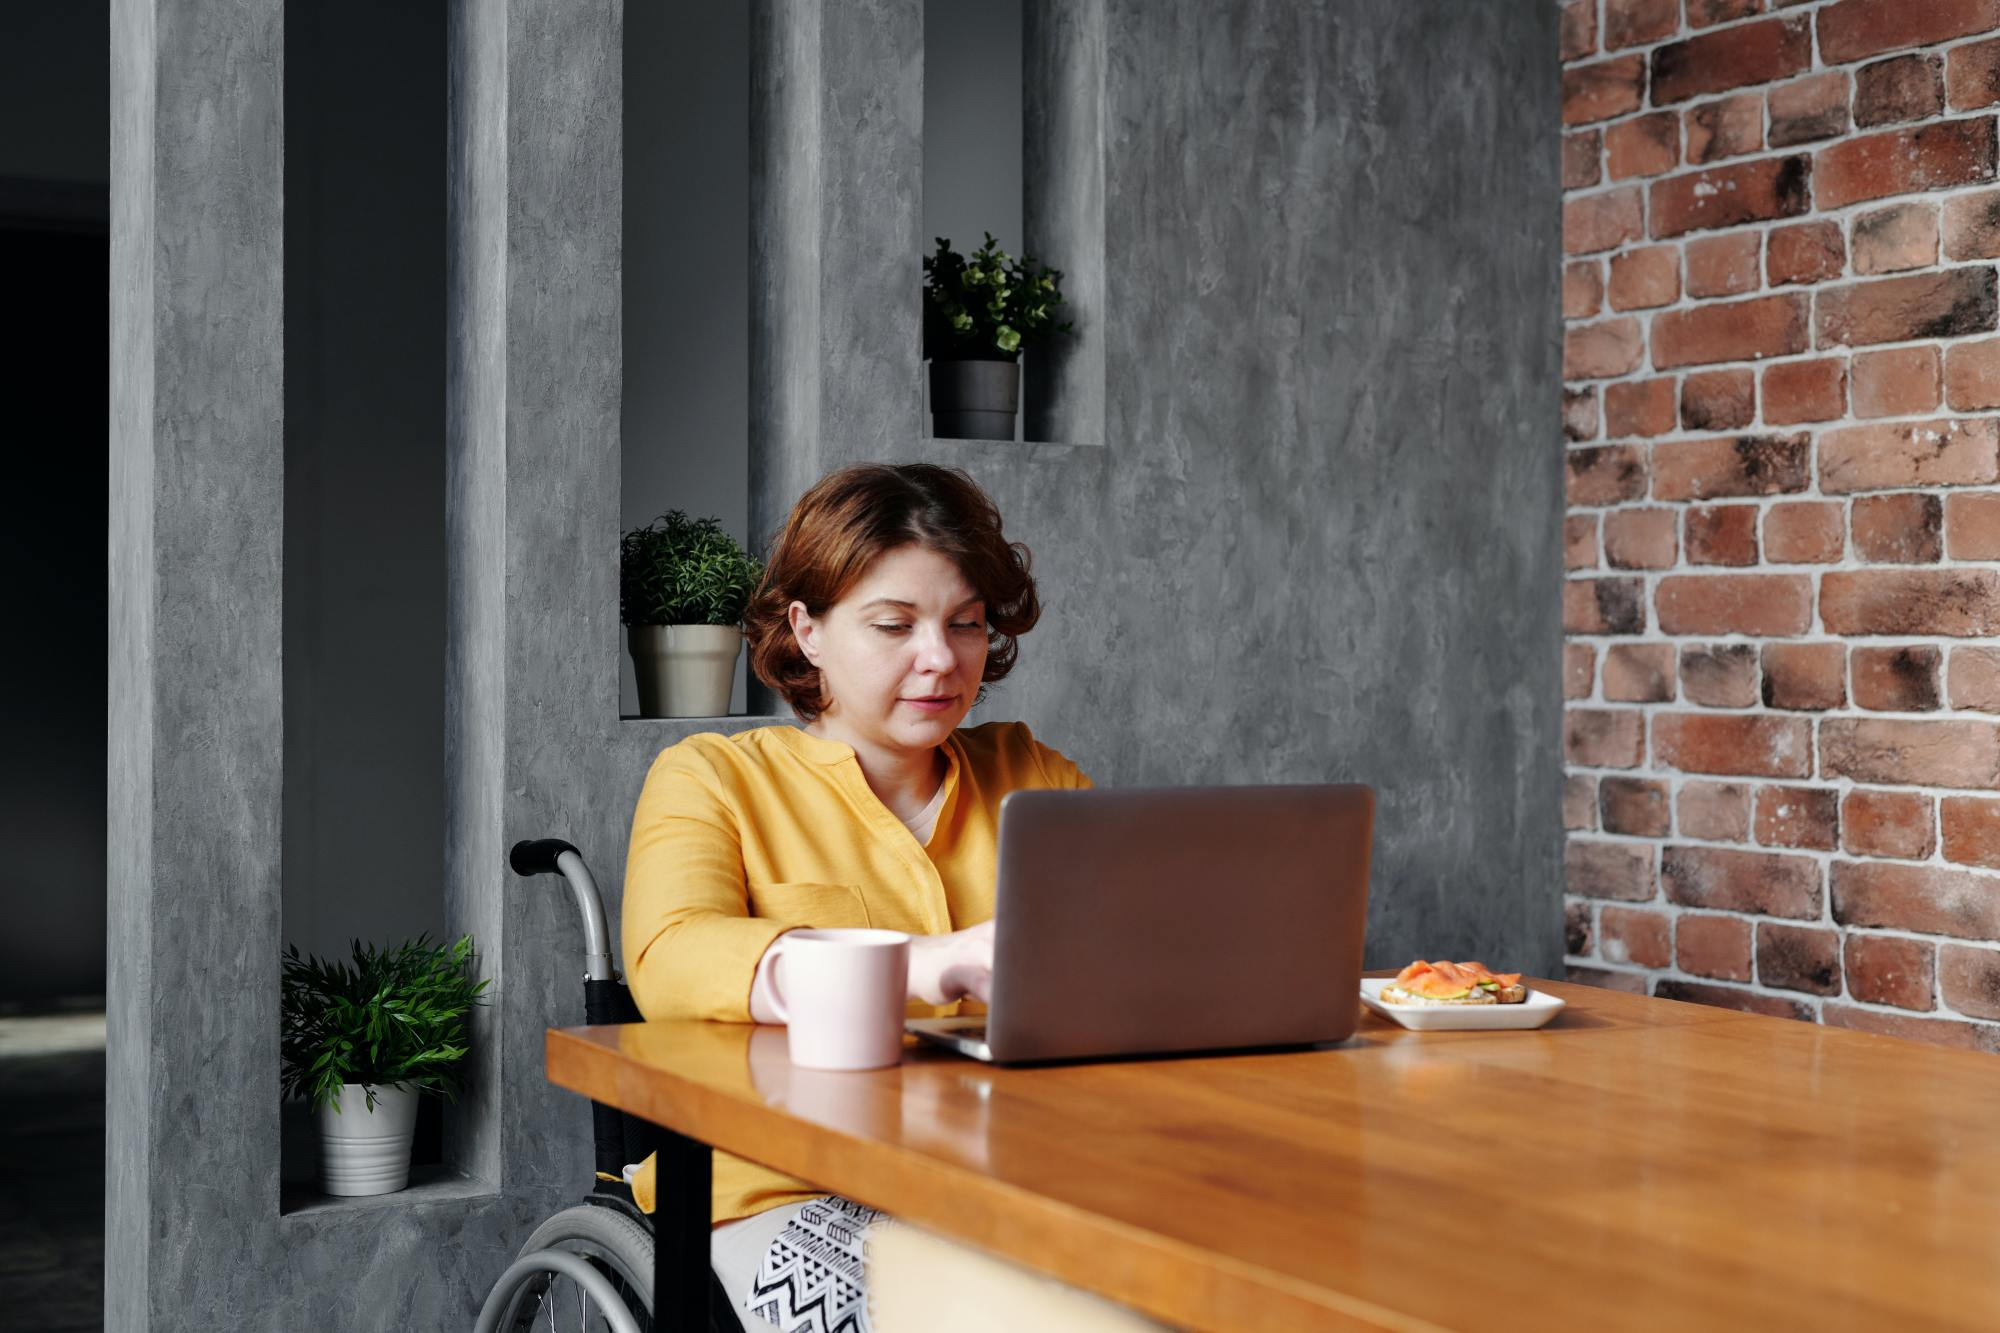 Research Shows Risks Of COVID-19 Home Working Revolution